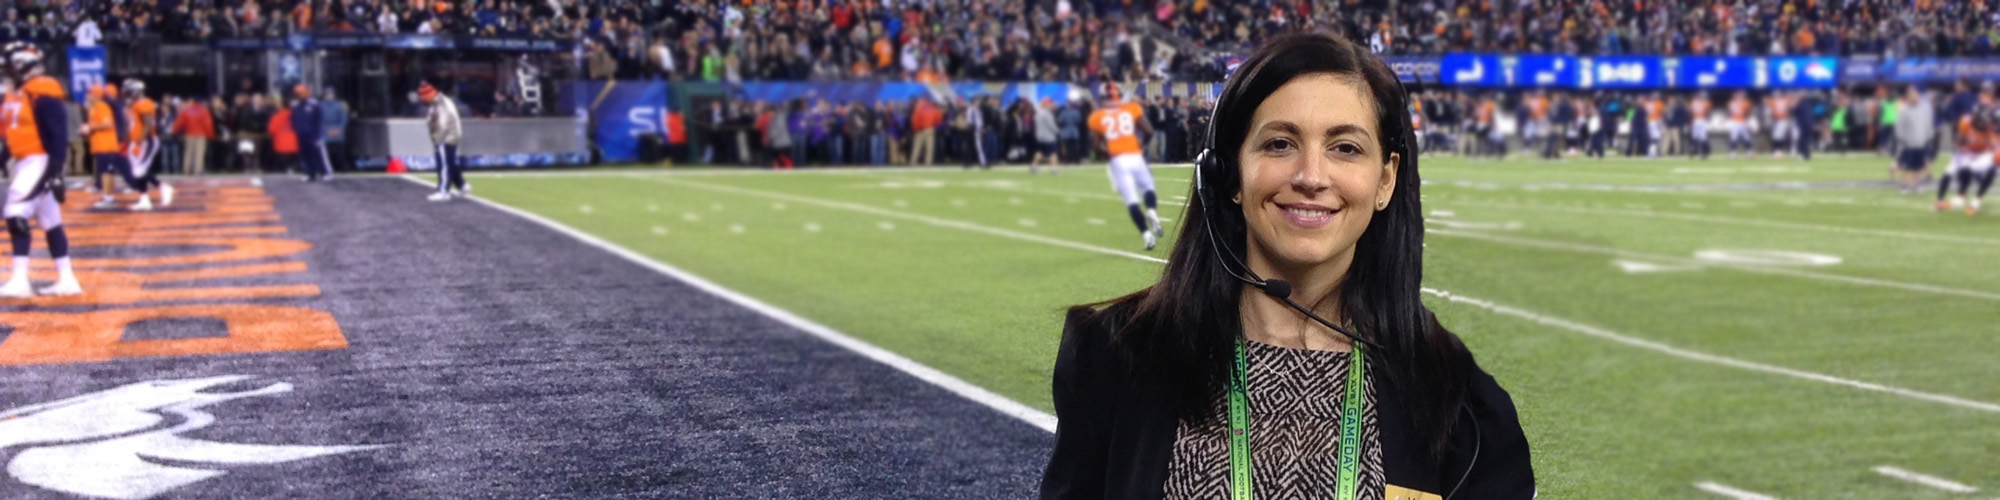 Katie Keenan '05, M '10 on the field at the Super Bowl